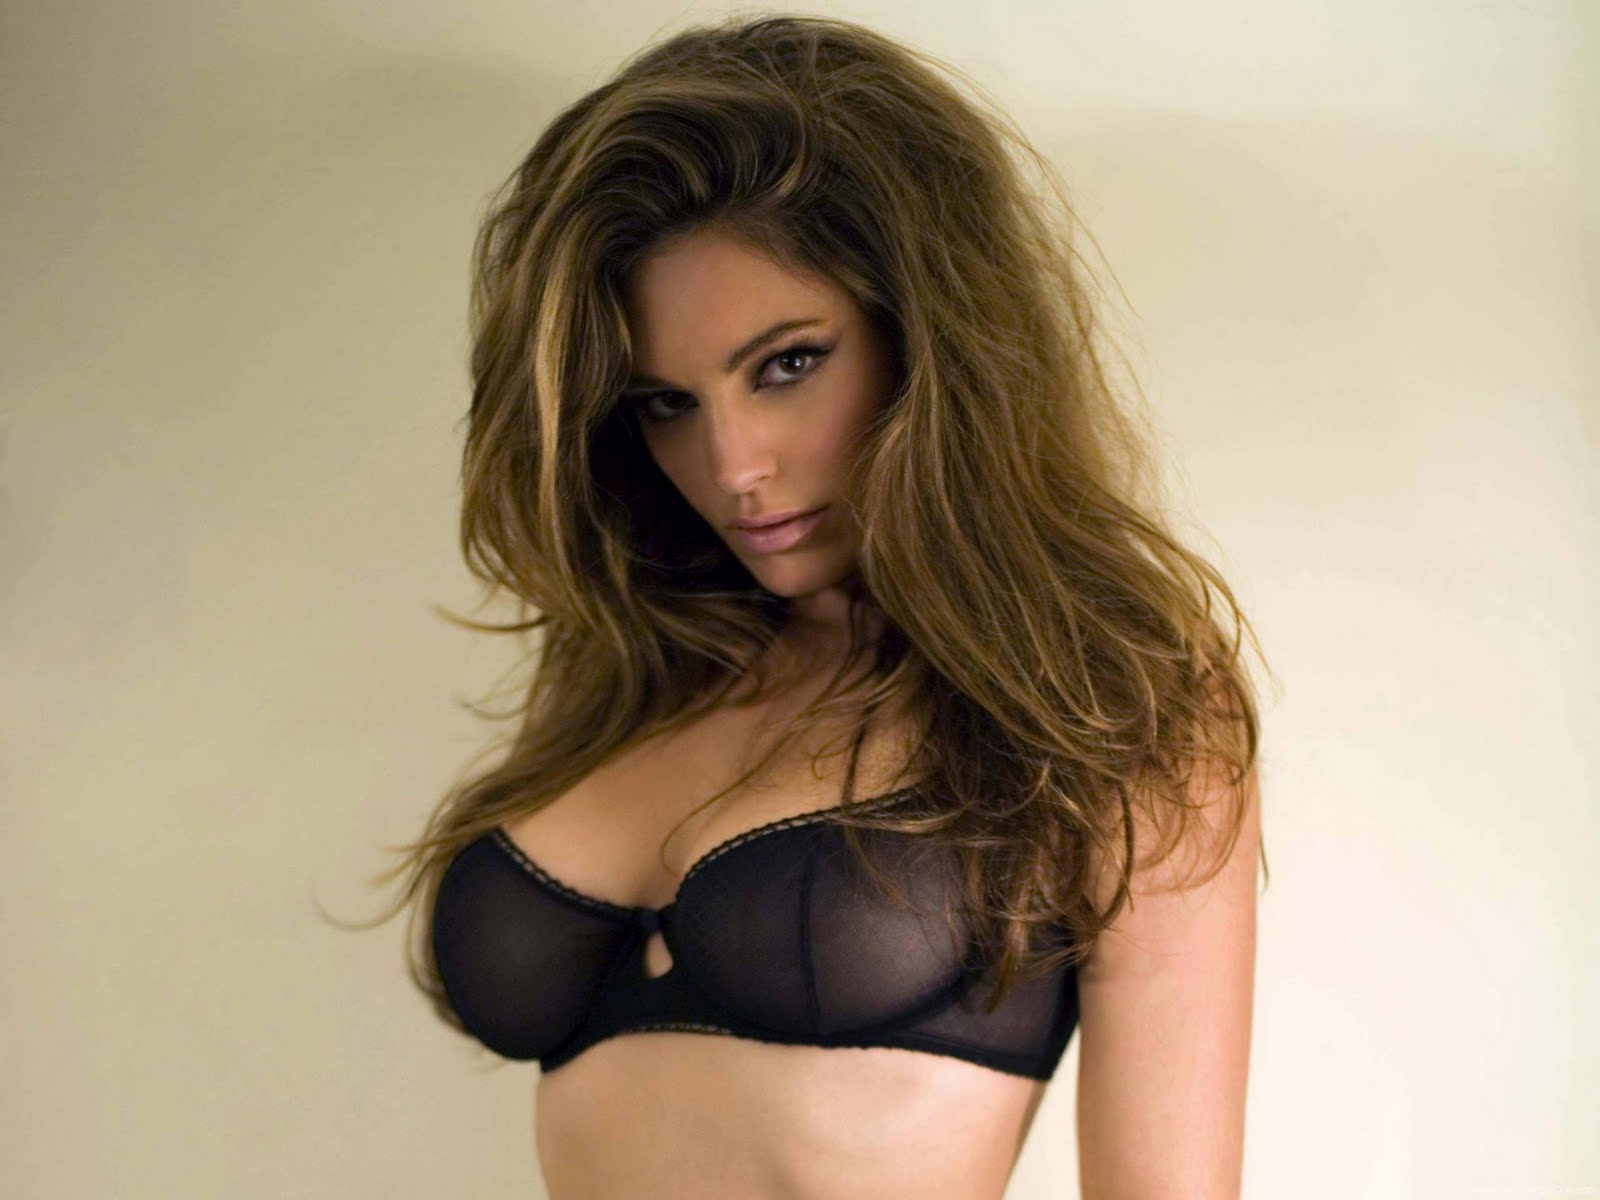 http://1.bp.blogspot.com/-Ik1sBpuhf1U/TeD152U7tMI/AAAAAAAAFoQ/6tb7CqTARSk/s1600/kelly_brook_a_HD_Wallpaper_93.jpg